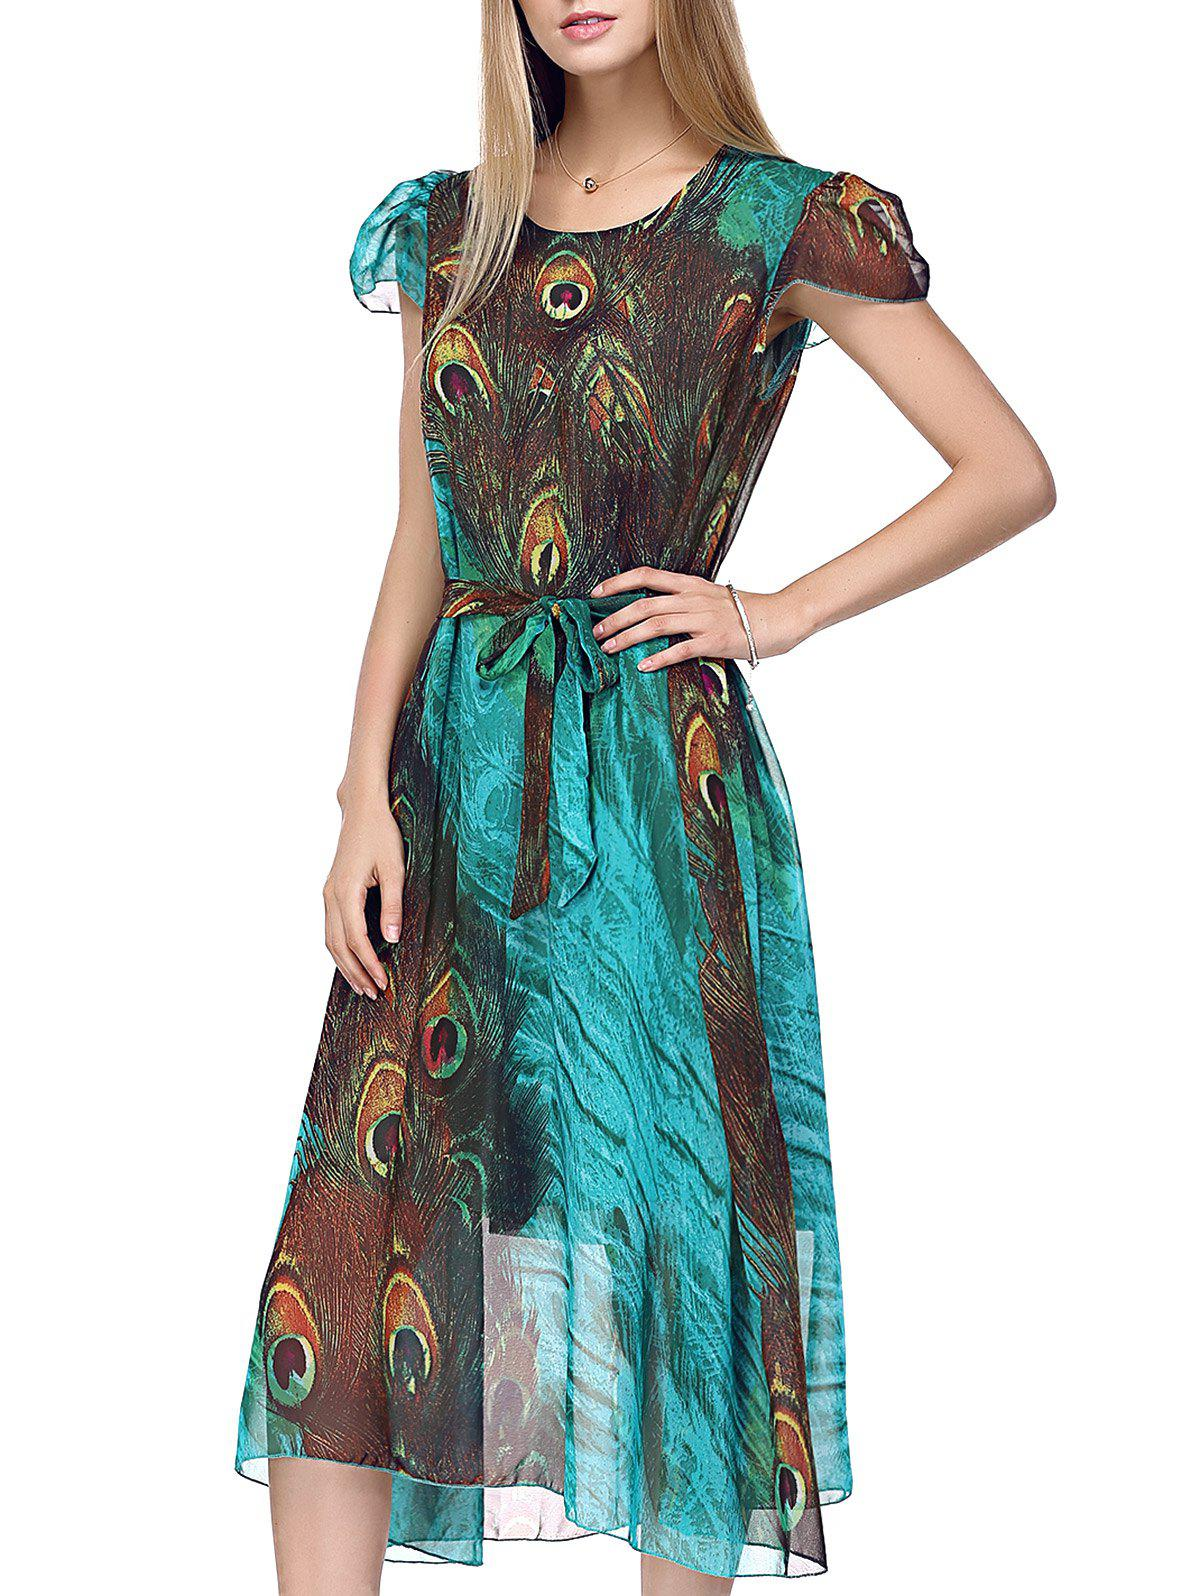 Bohemian Peacock Tail Print Women's Midi Dress - GREEN ONE SIZE(FIT SIZE XS TO M)